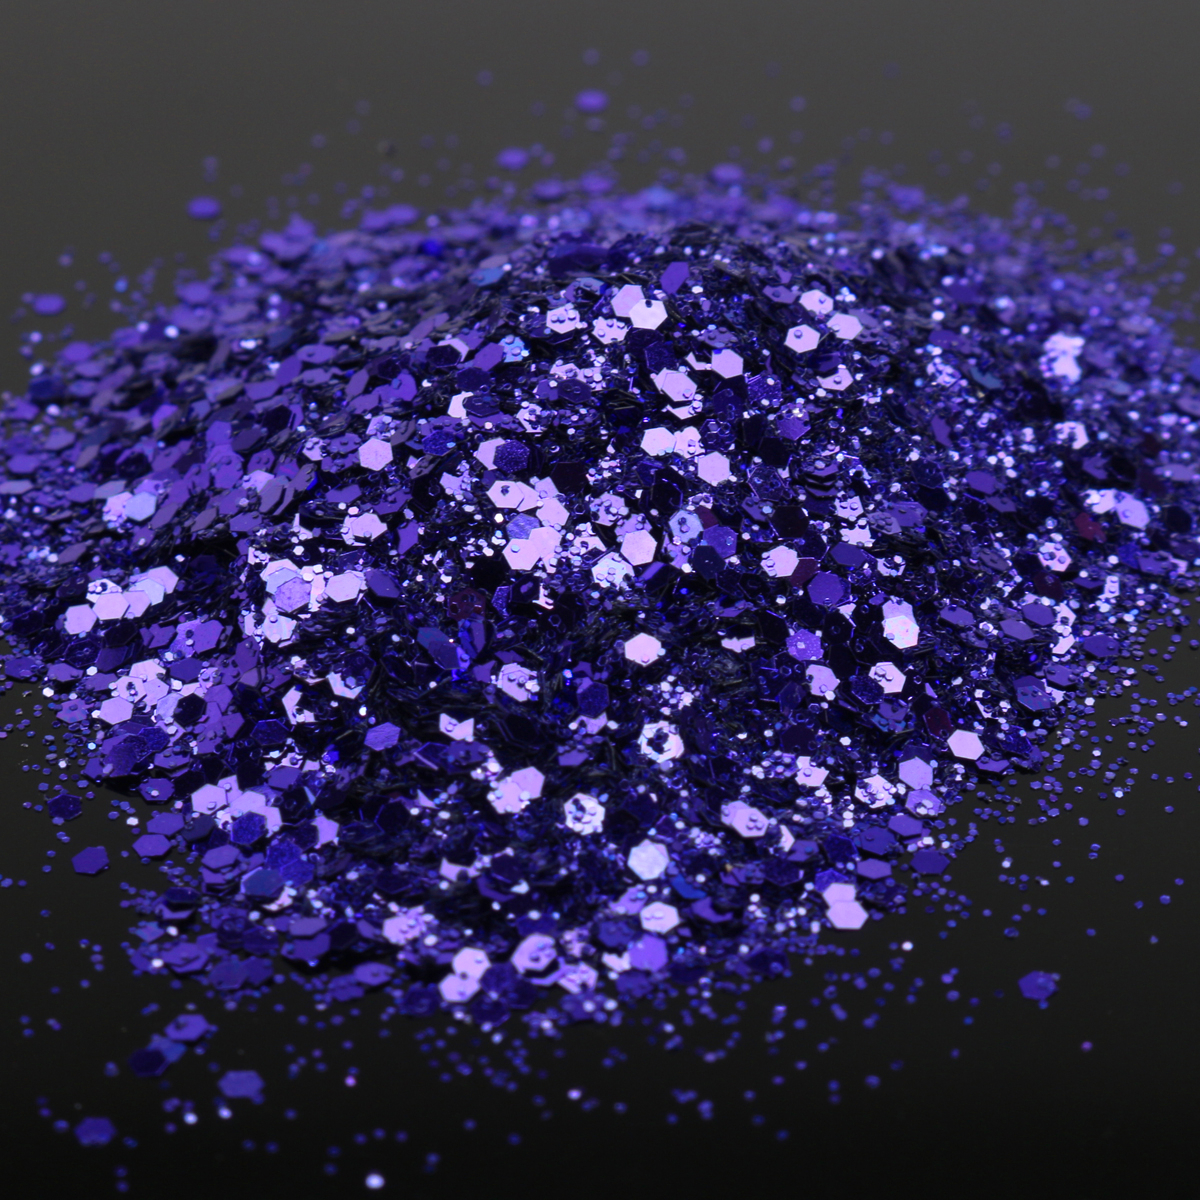 Dark Purple Nail Art Glitter Powder Sheet 1mm Sequins Sparkly Colorful Iridescent Acrylic Tips 10ml